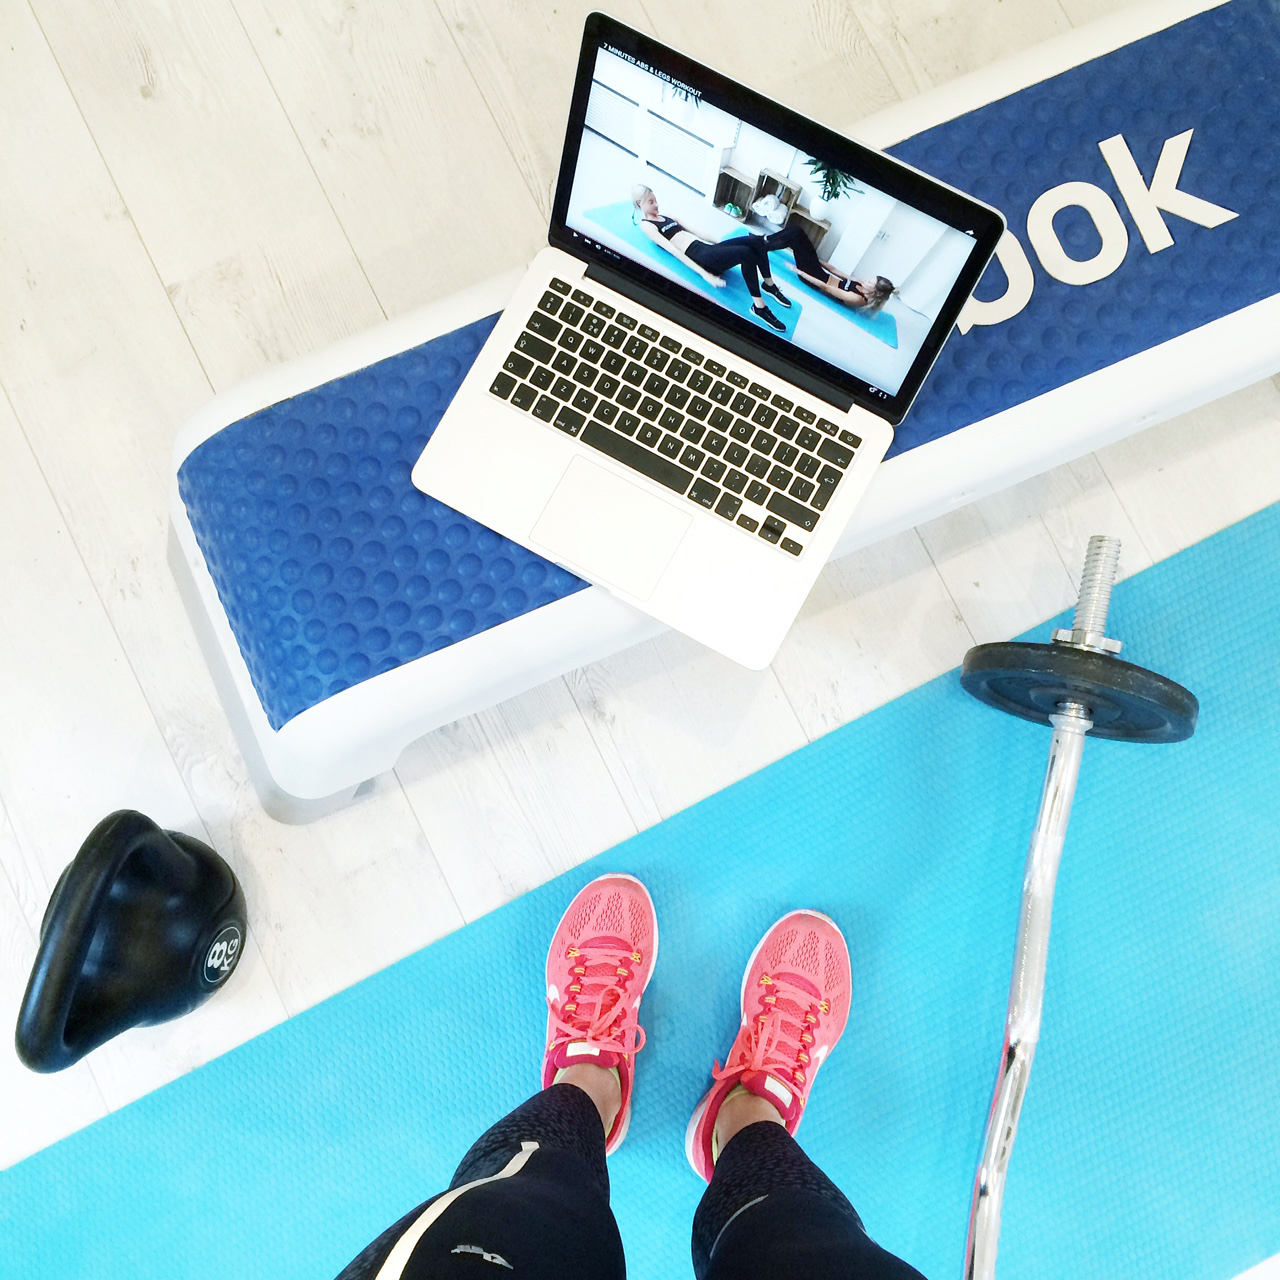 Benen Trainen Billen En Buik Trainen In 30 Minuten Followfitgirls